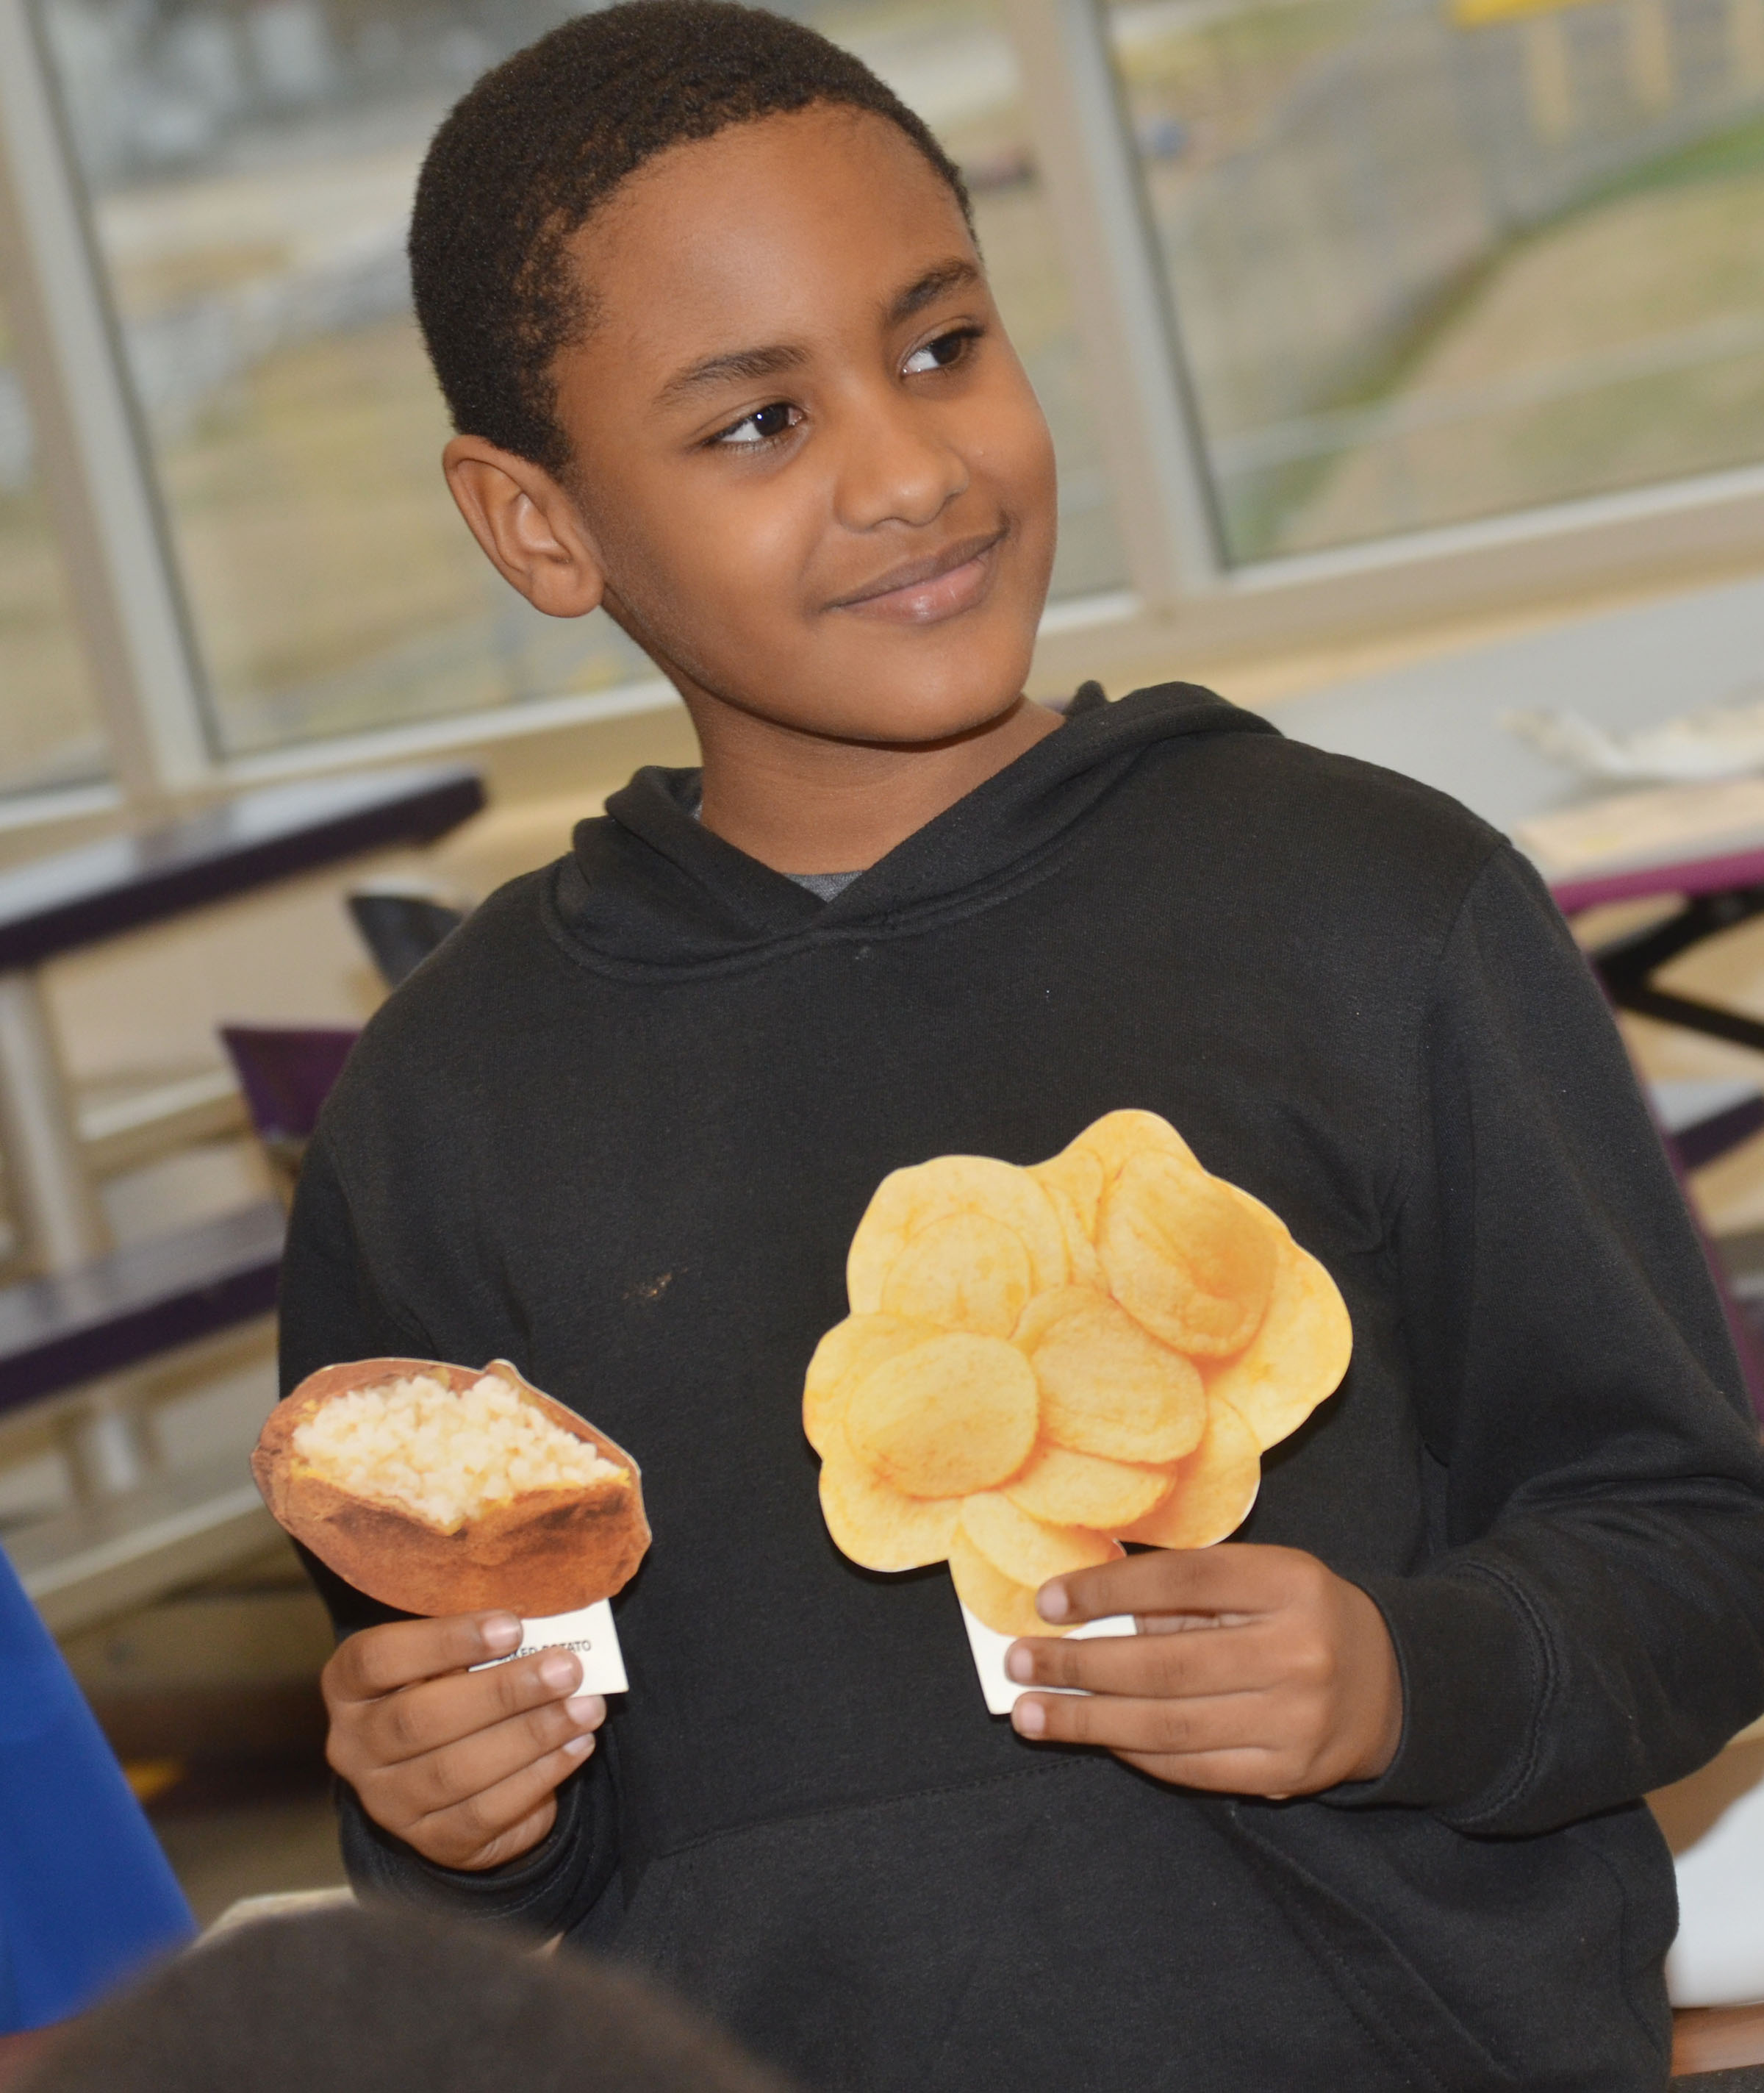 CES third-grader Shaiden Calhoun asks his classmates which is healthier, baked potatoes or potato chips.